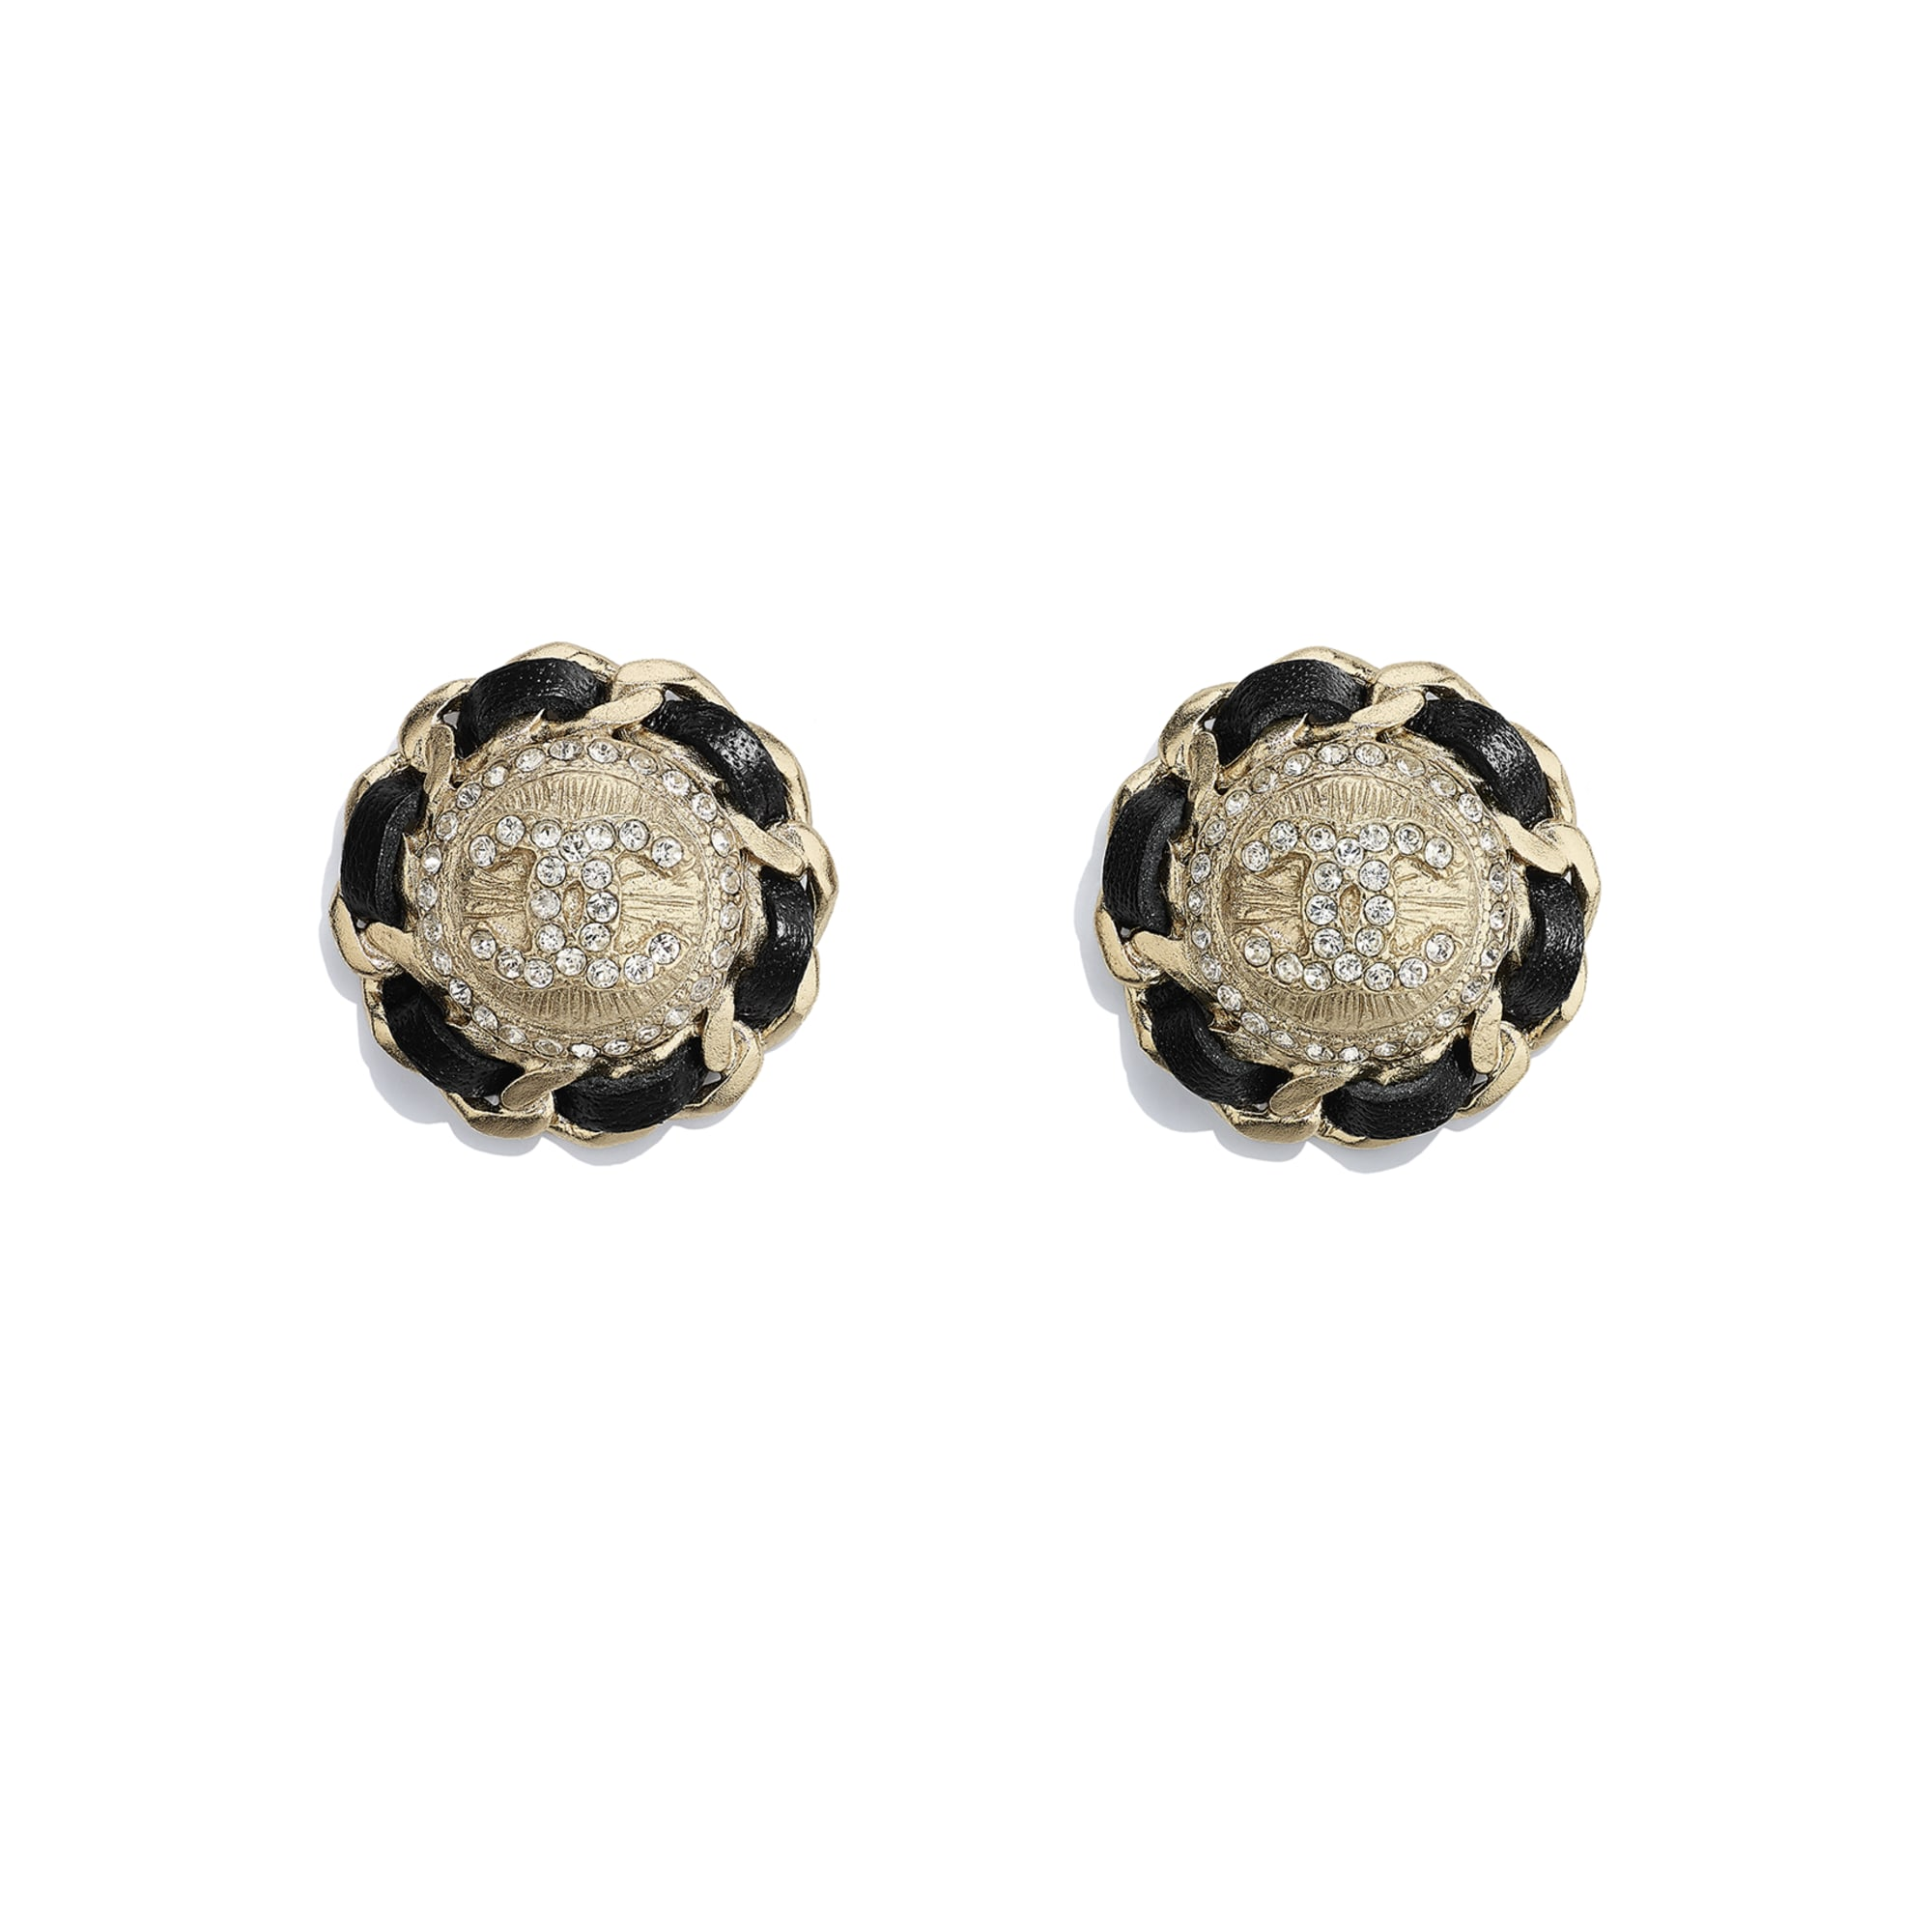 Earrings - Gold, Black & Crystal - Metal, calfskin & diamanté - CHANEL - Default view - see standard sized version